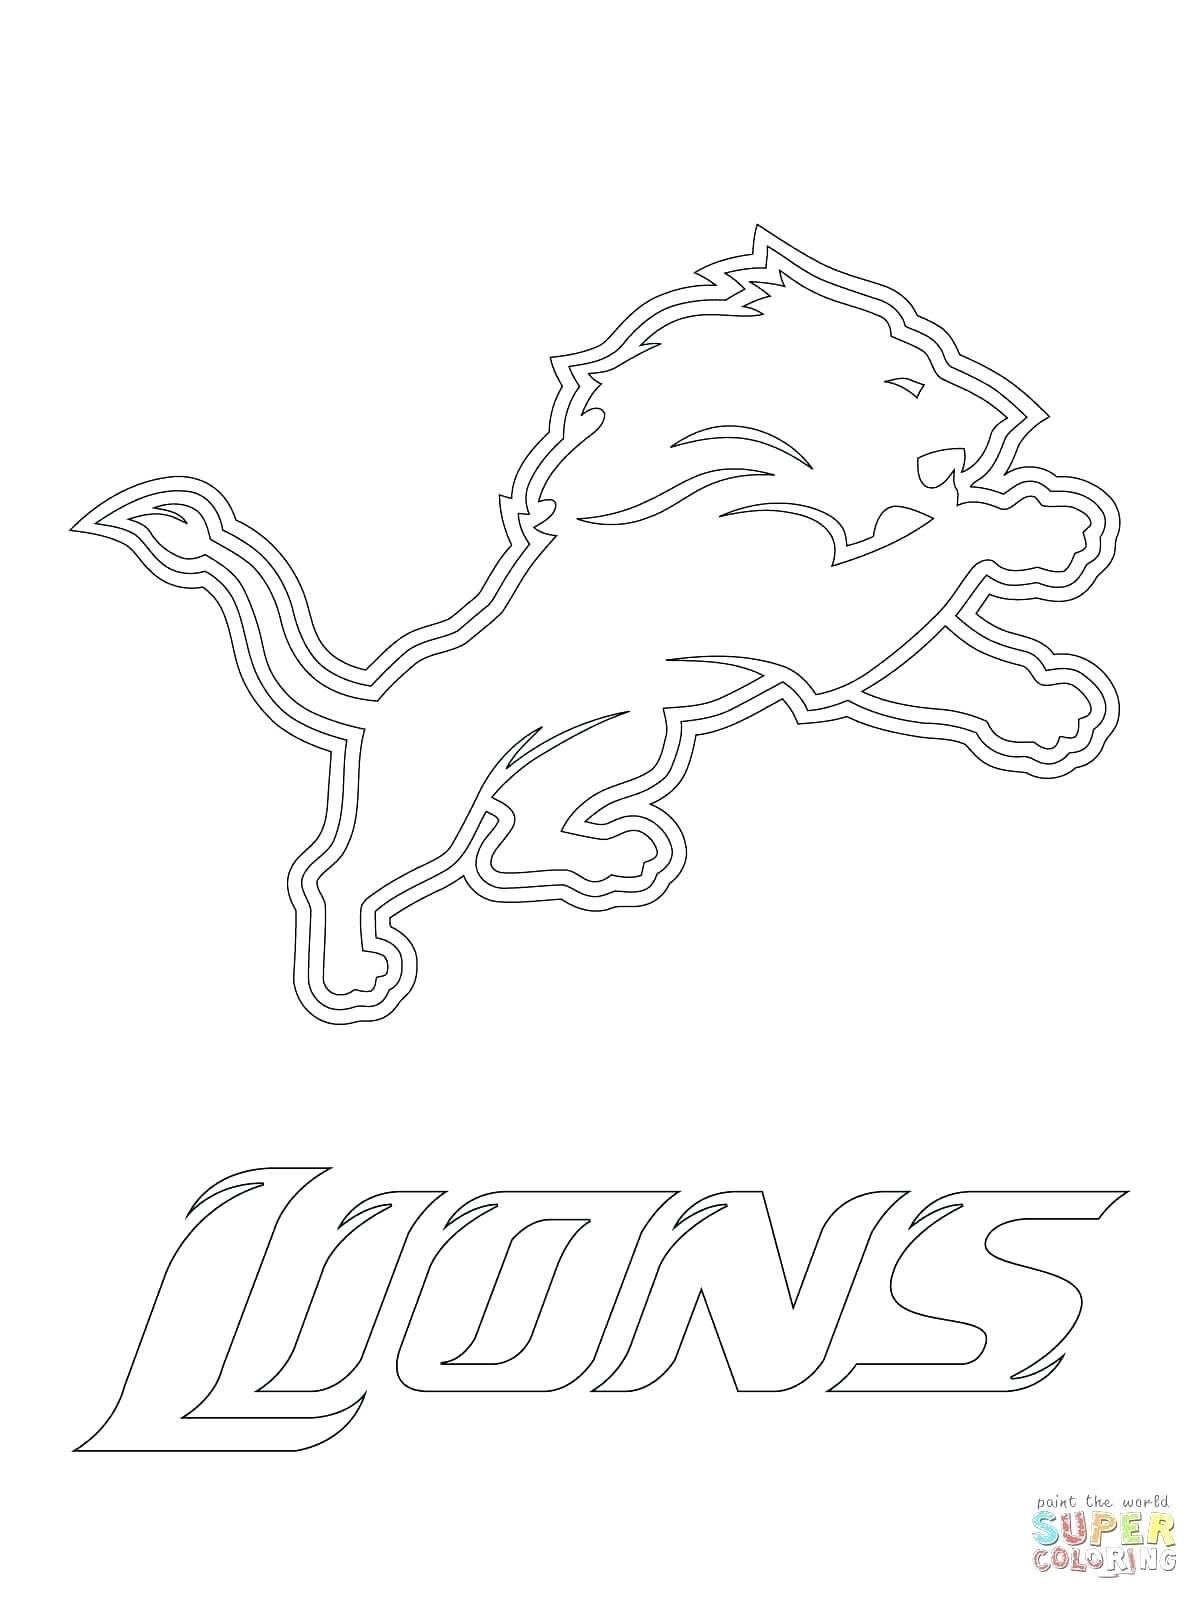 Nfl Logo Drawing at GetDrawings.com   Free for personal use Nfl Logo ...